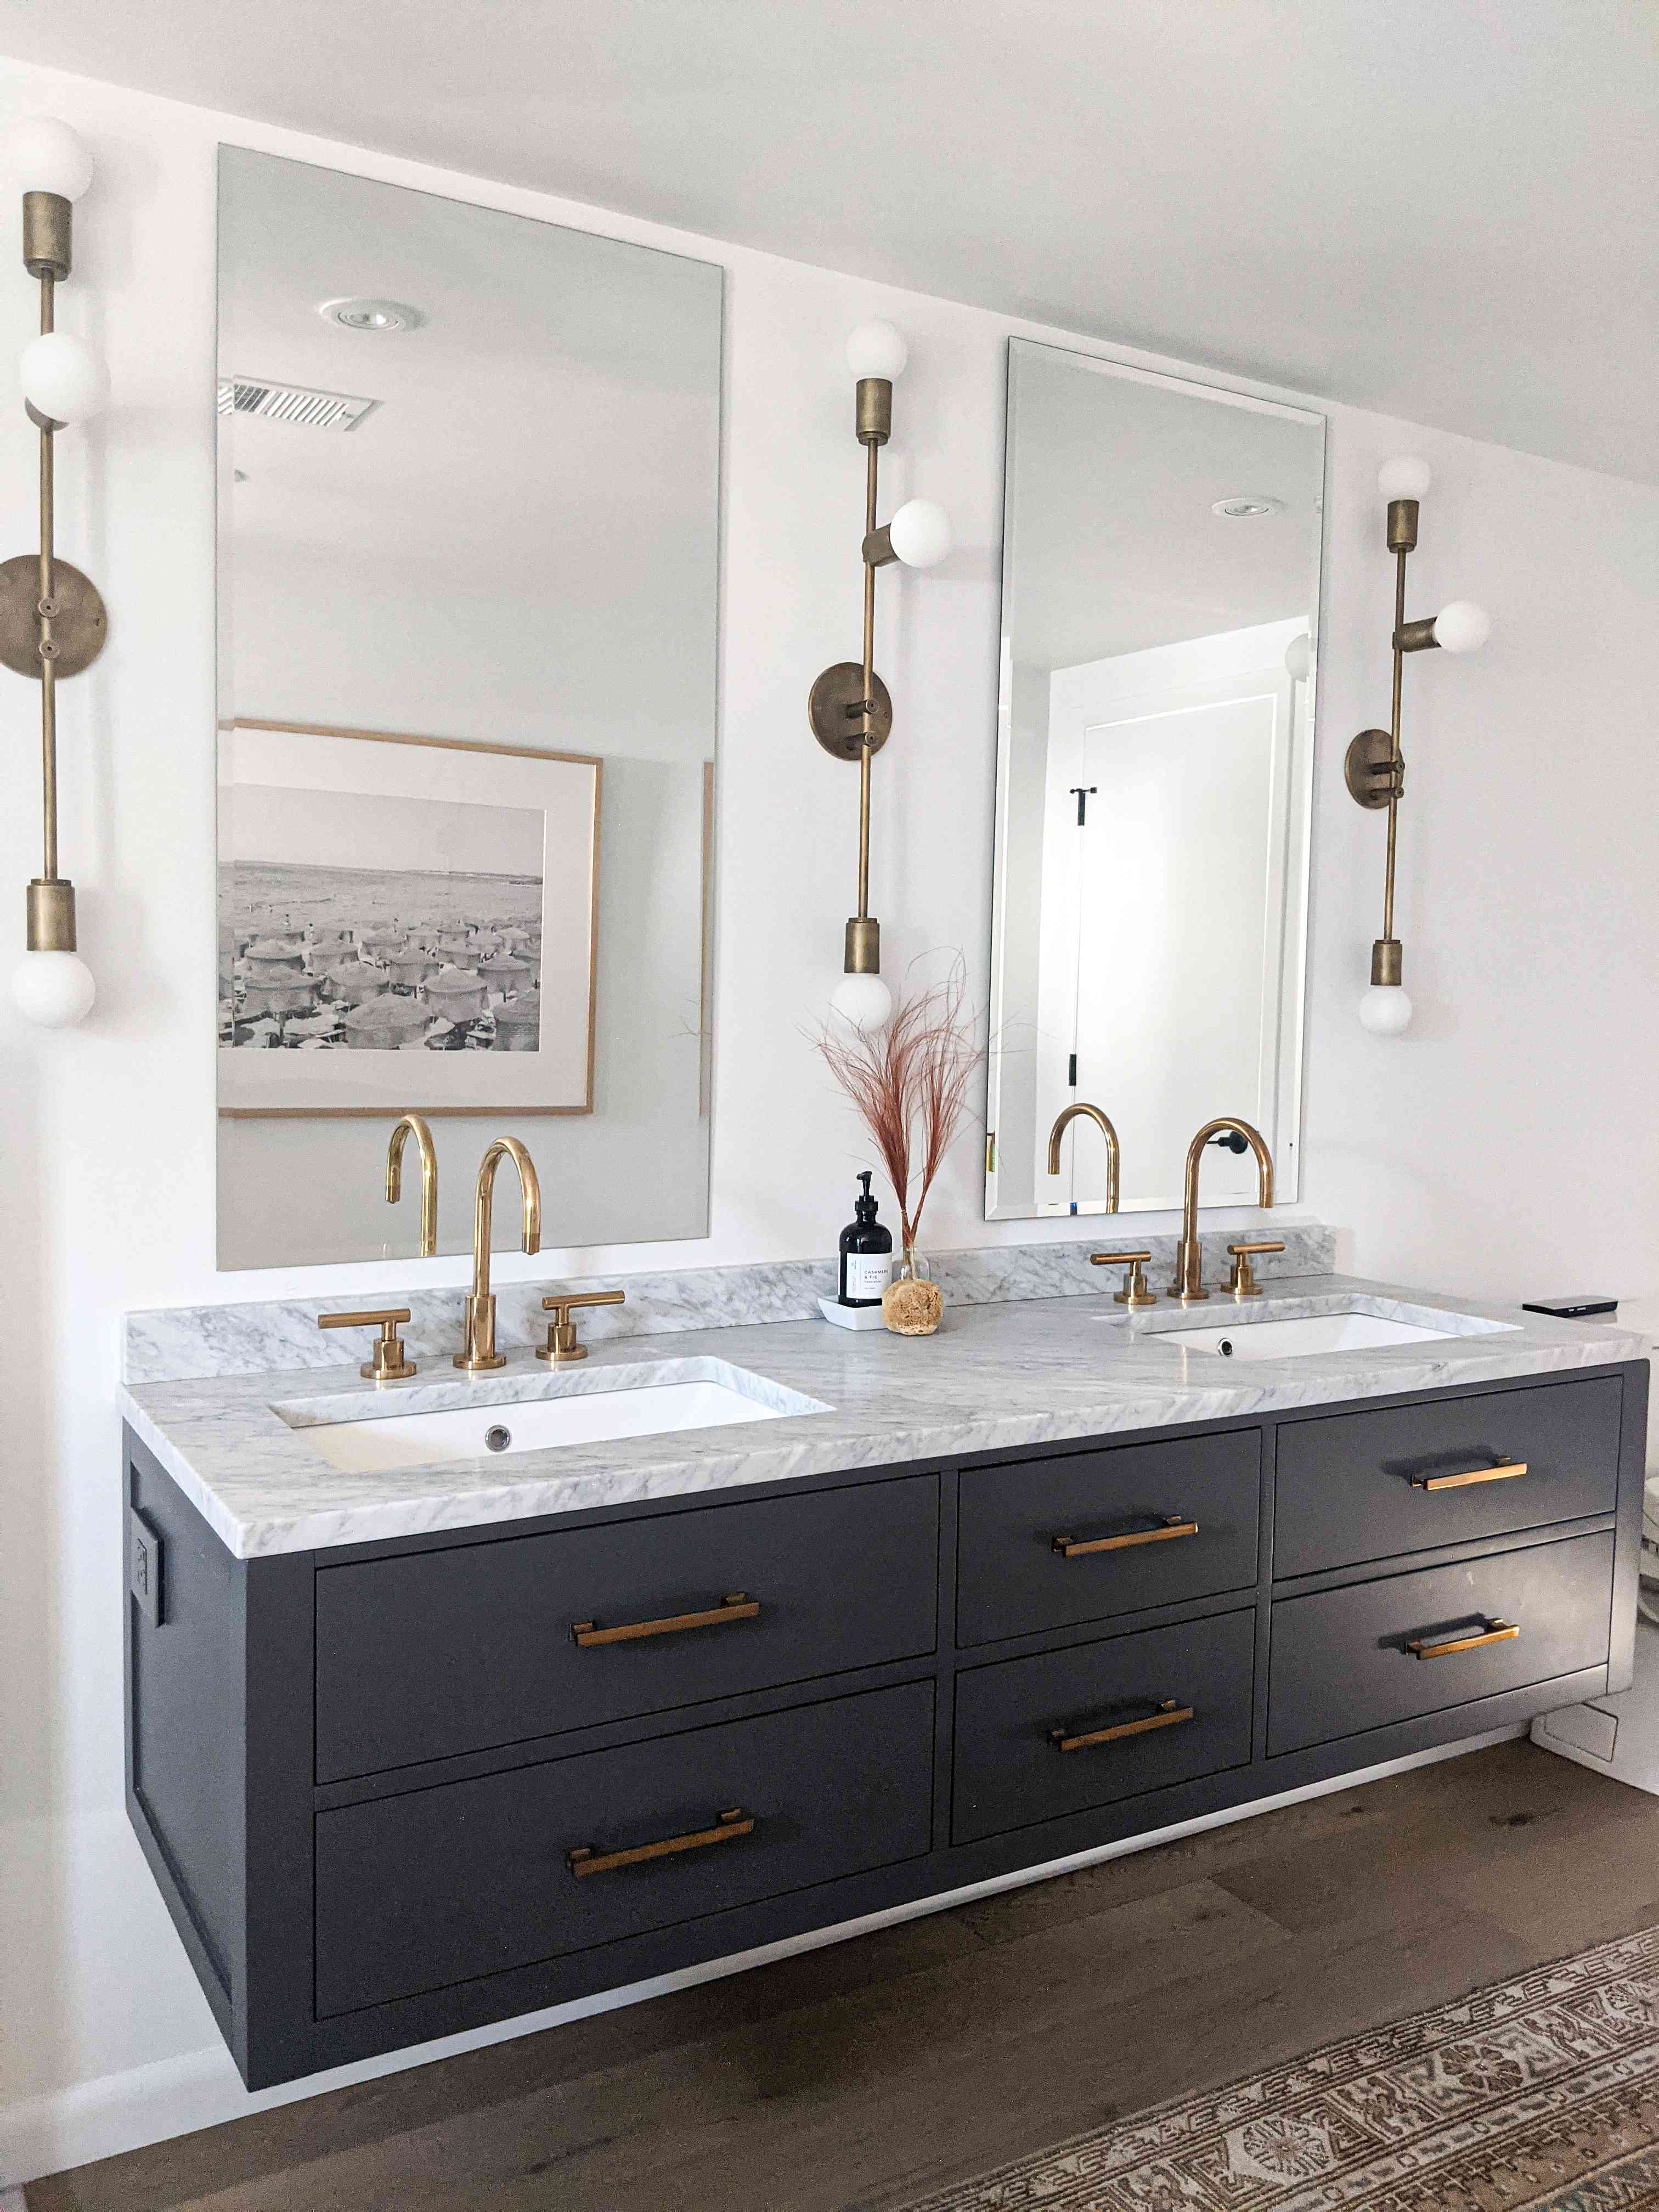 The vanity in the primary bathroom of Molly & Fritz's Shaker Heights home